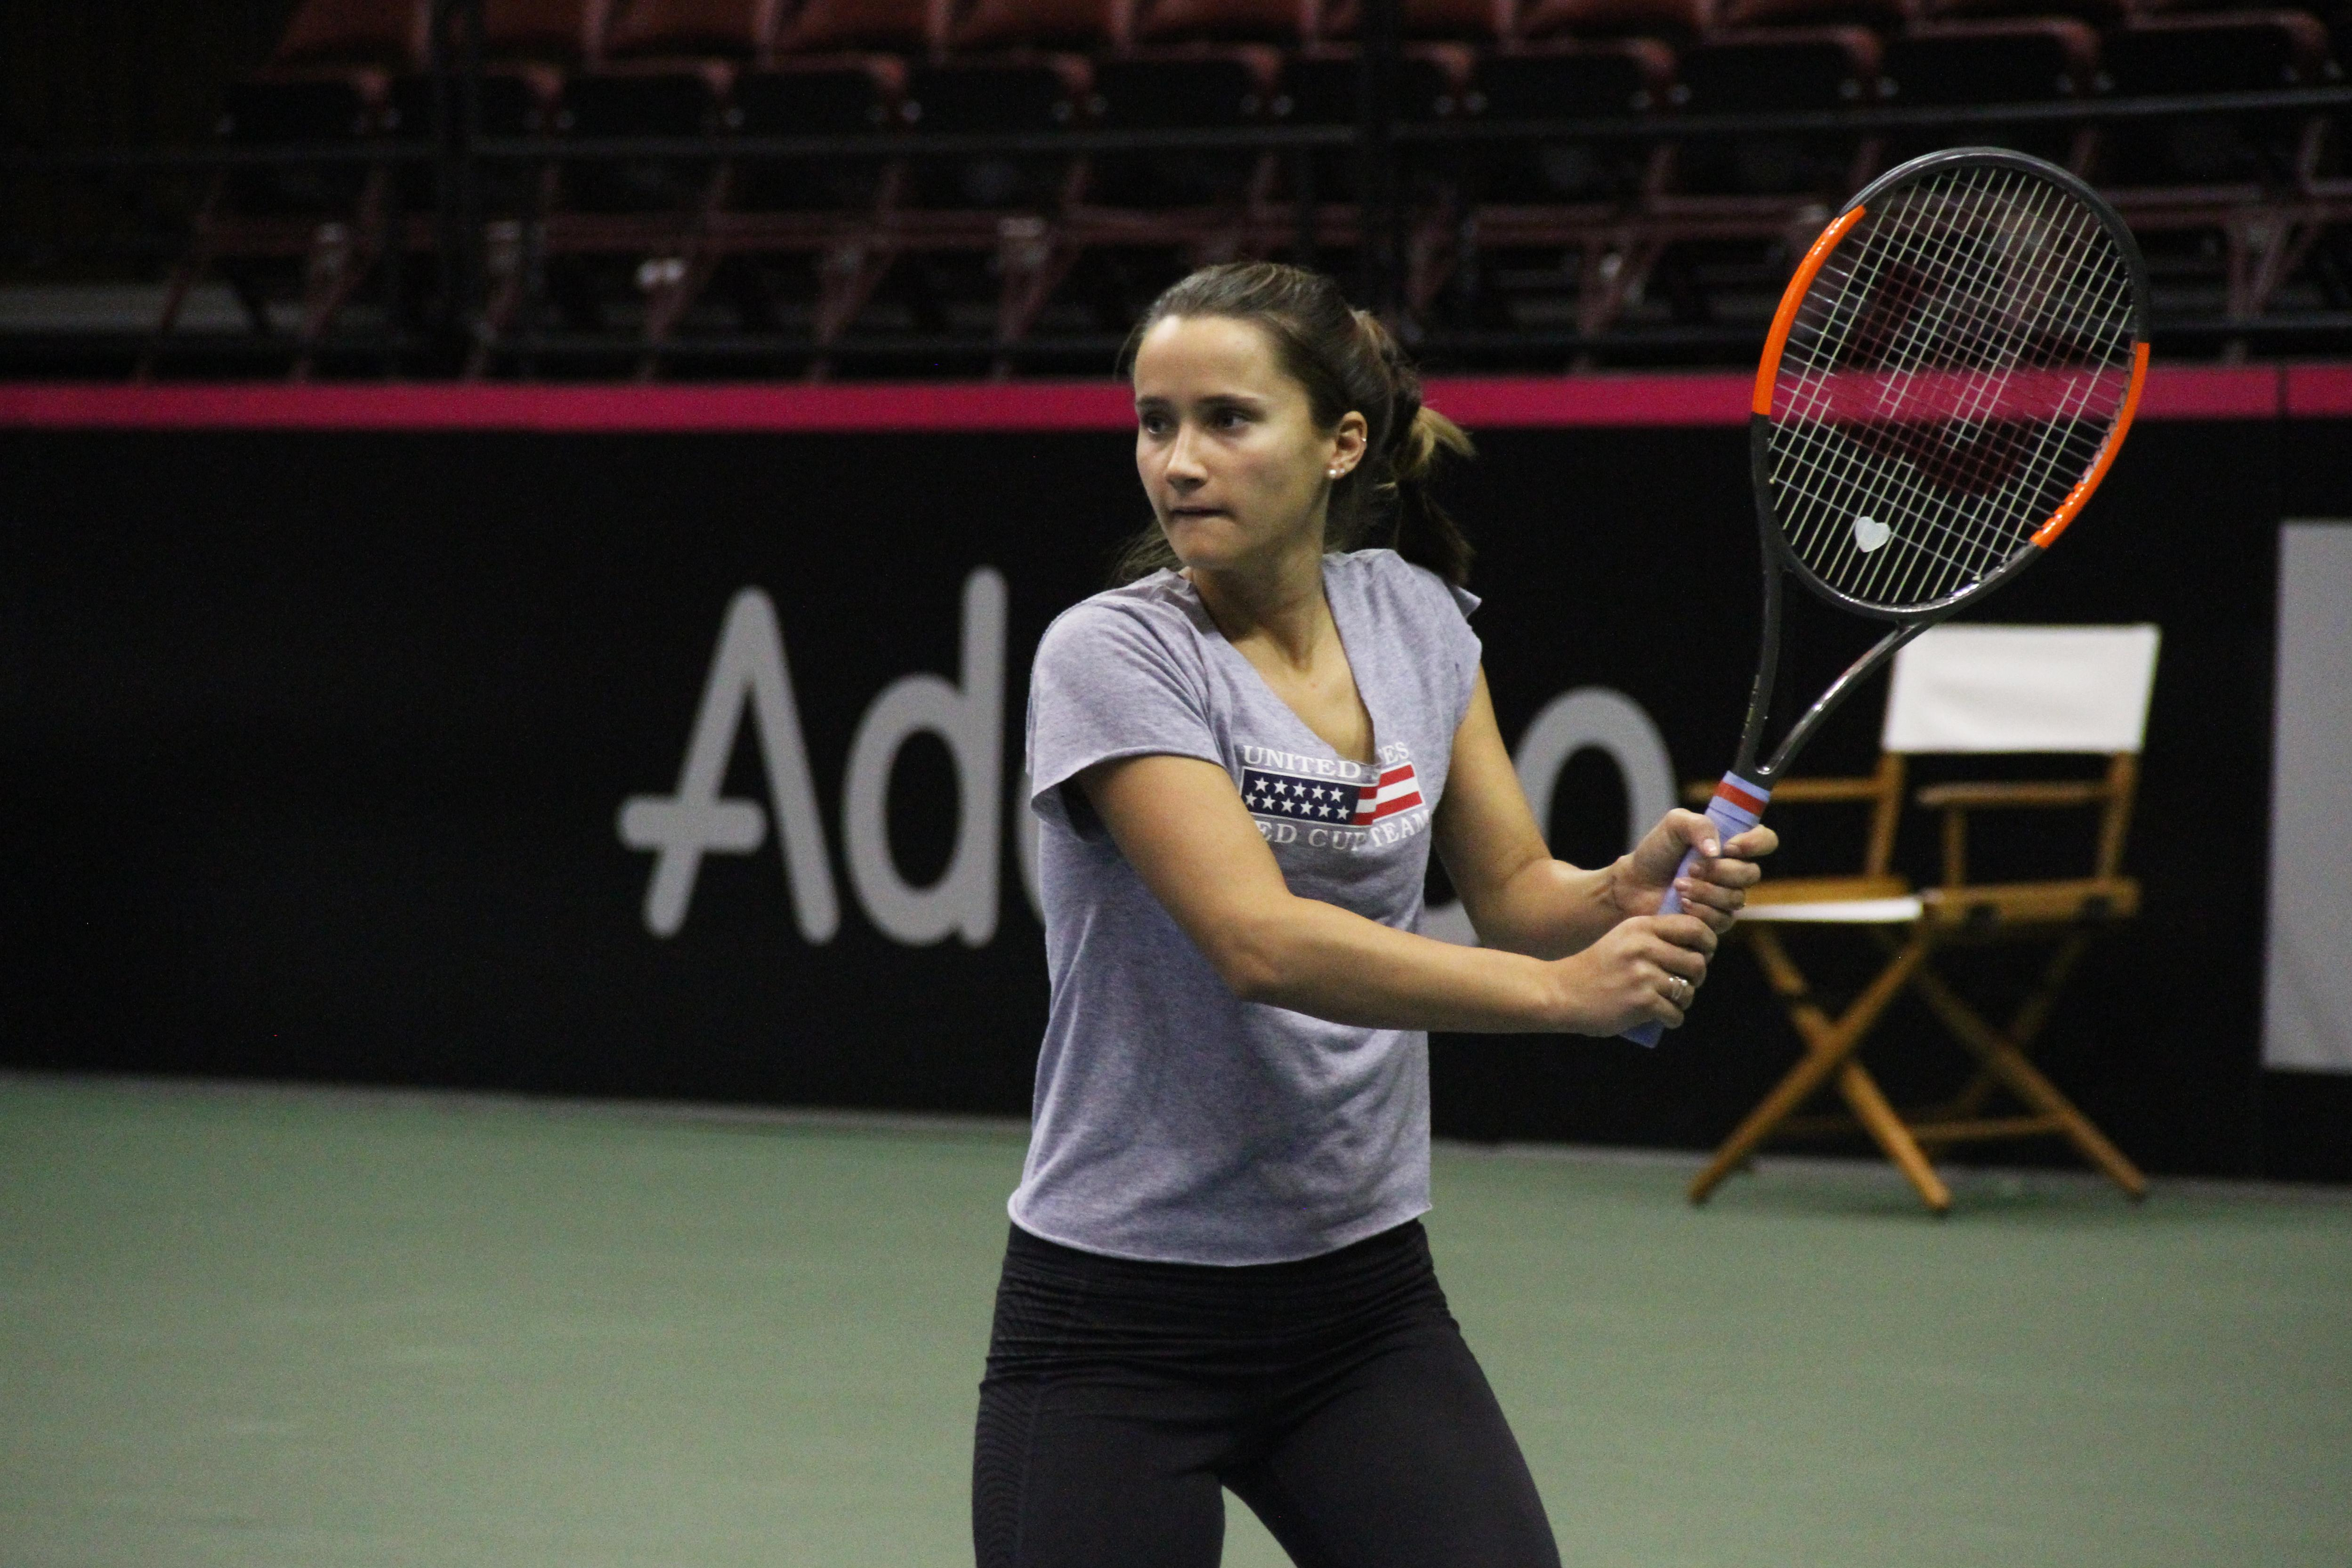 Lauren Davis practices at the US Cellular Center on Feb. 7, 2018, ahead of the Fed Cup. (Photo credit: WLOS Staff)